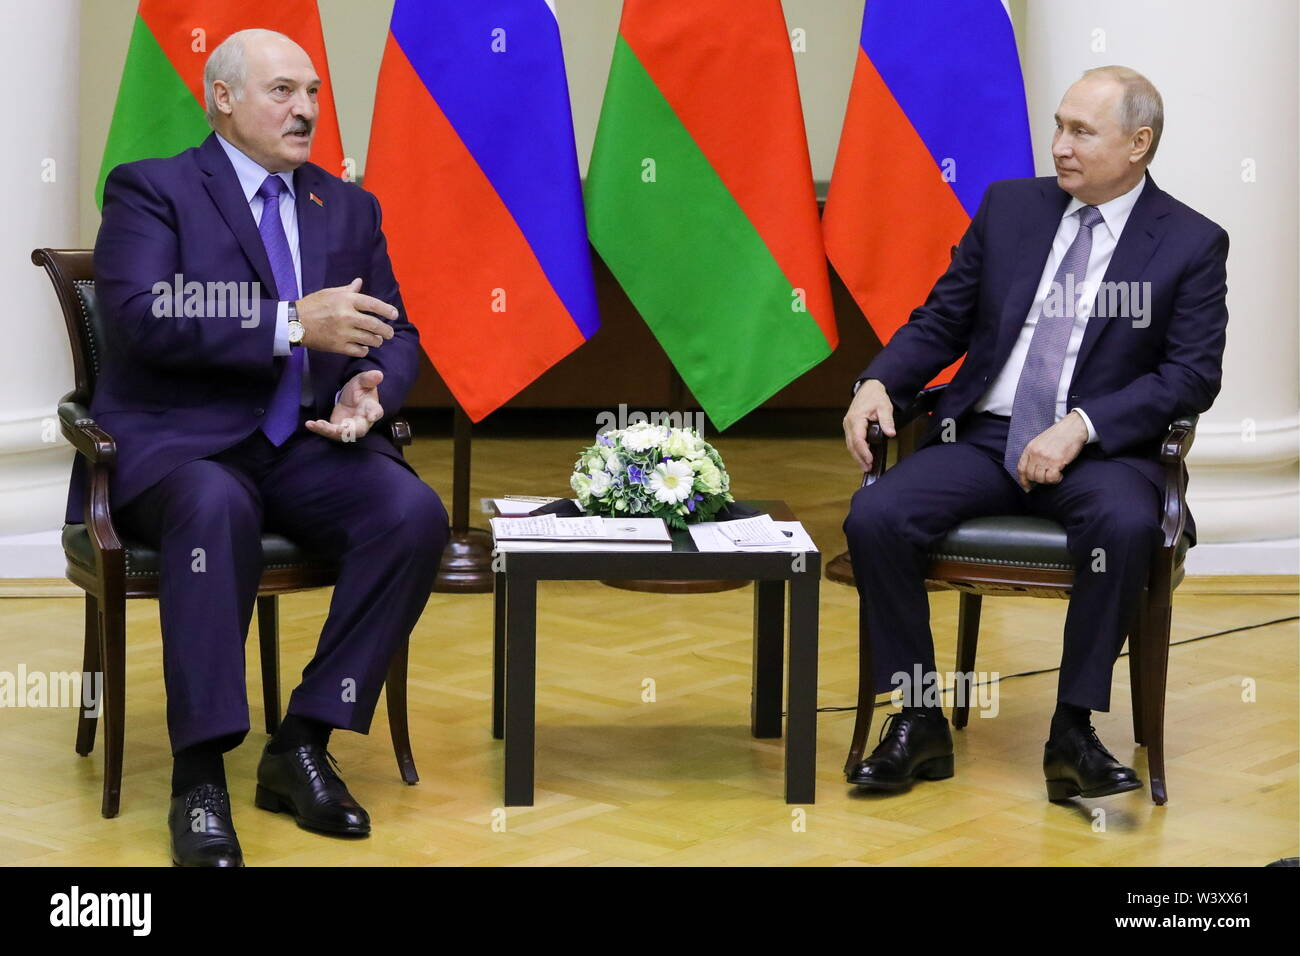 St Petersburg, Russia. 18th July, 2019. ST PETERSBURG, RUSSIA - JULY 18, 2019: Belarus' President Alexander Lukashenko (L) and Russia's President Vladimir Putin during a meeting at Tauride Palace. Mikhail Klimentyev/Russian Presidential Press and Information Office/TASS Credit: ITAR-TASS News Agency/Alamy Live News - Stock Image